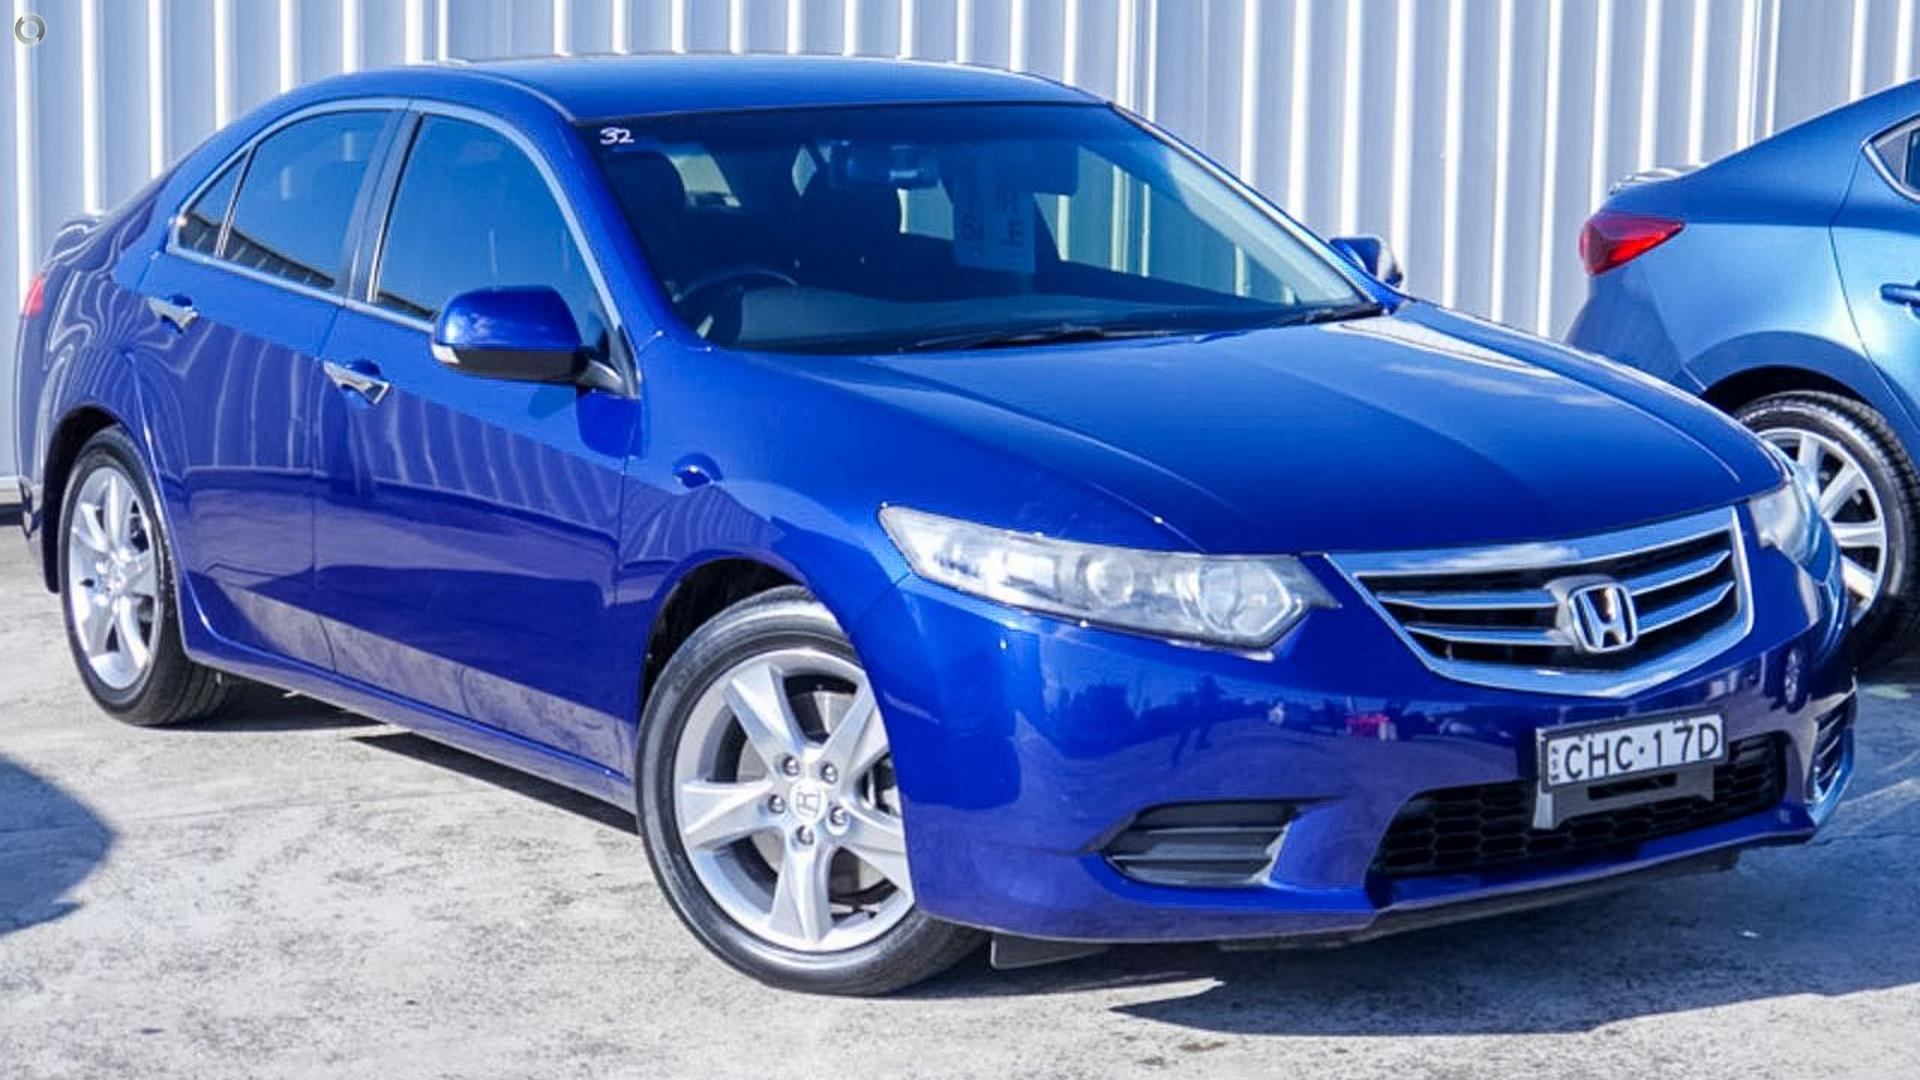 2012 Honda Accord Euro 8th Gen